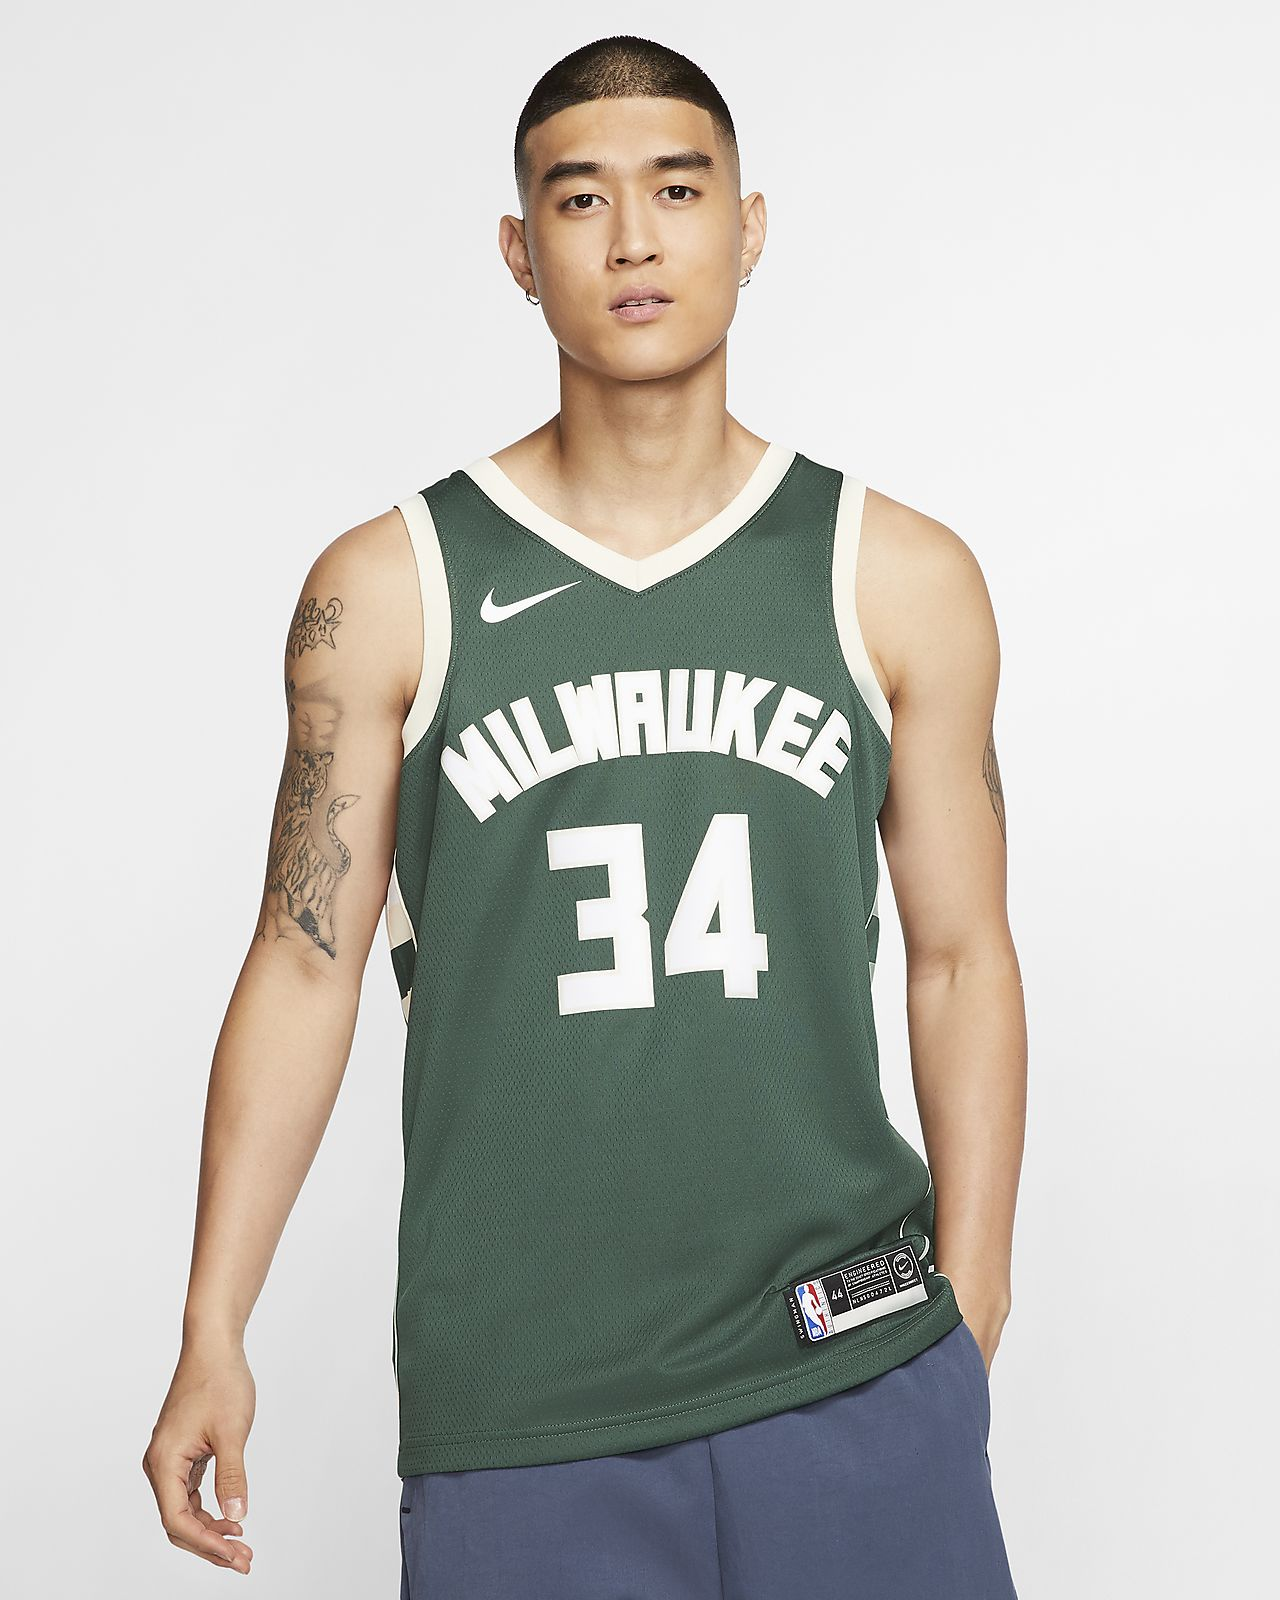 Maillot Nike NBA Swingman Giannis Antetokounmpo Bucks Icon Edition pour Homme